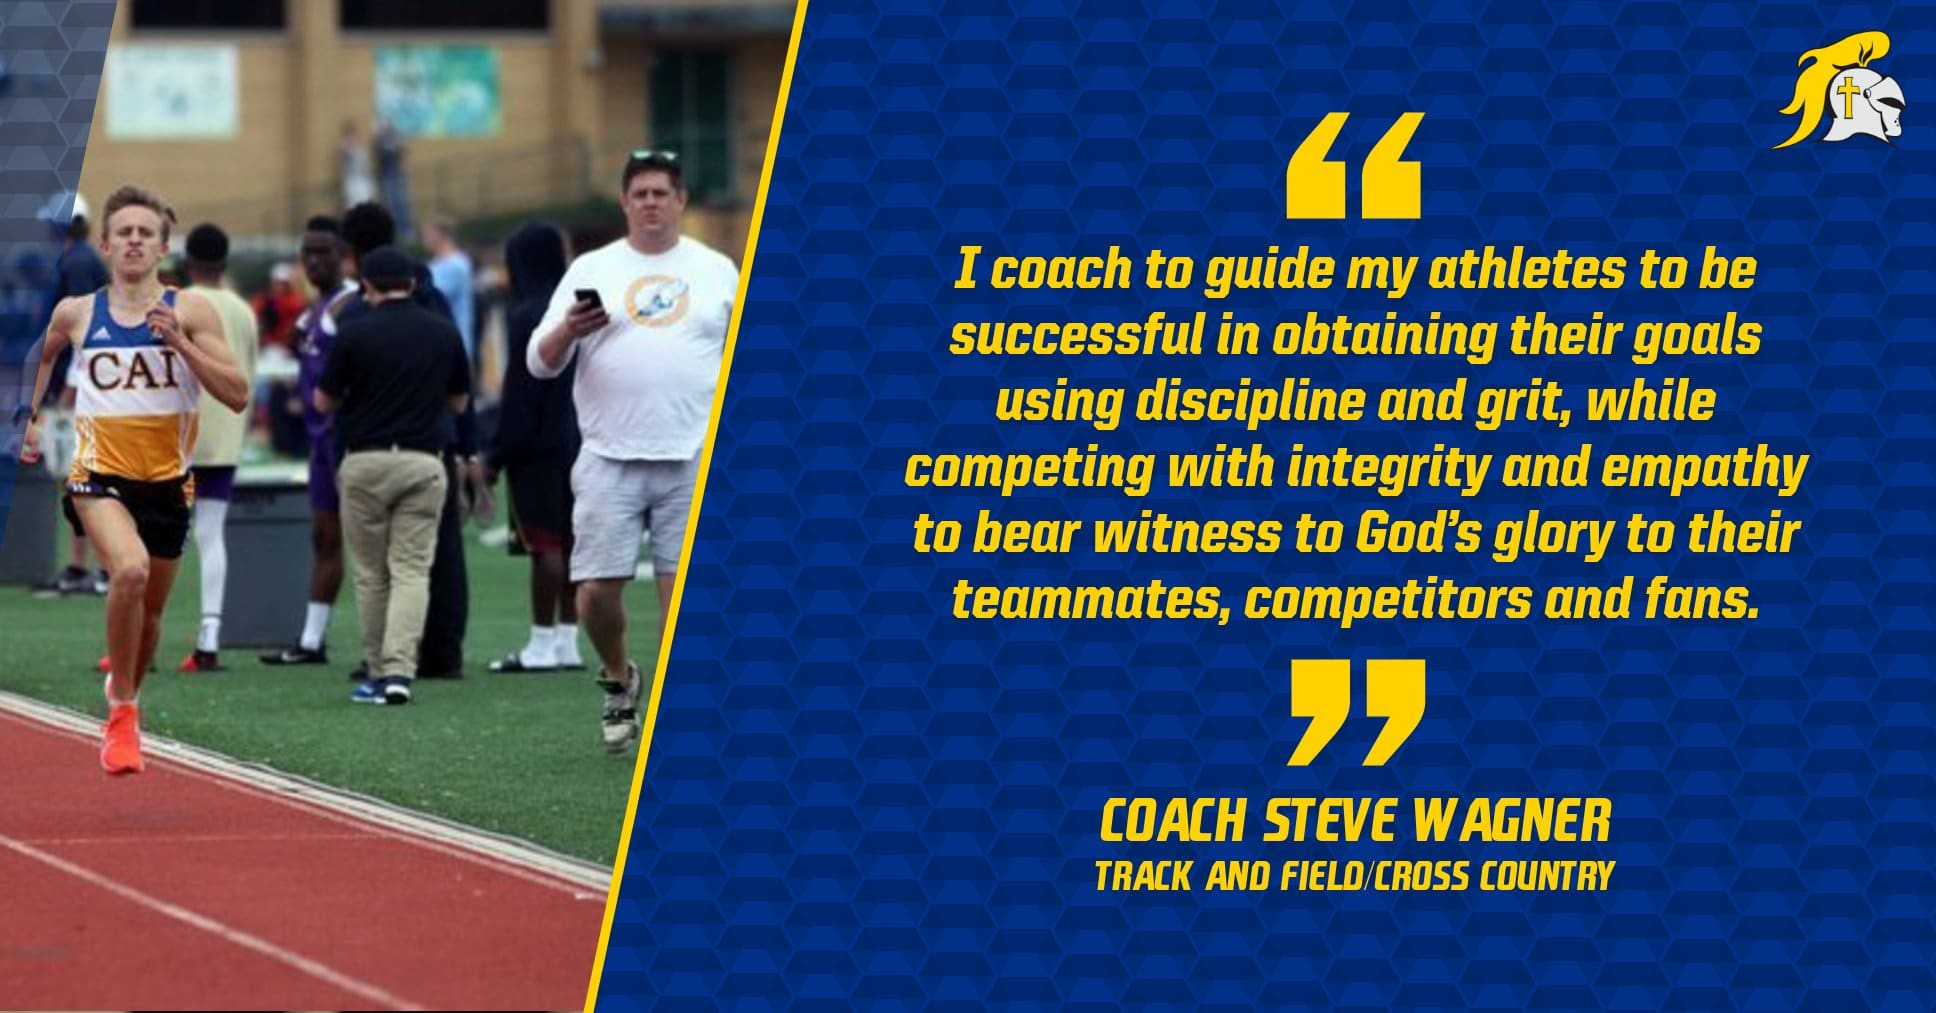 Christian Academy School System | Christian Academy of Indiana | Track & Field and Cross Country | Coach Wagner's Transformational Purpose